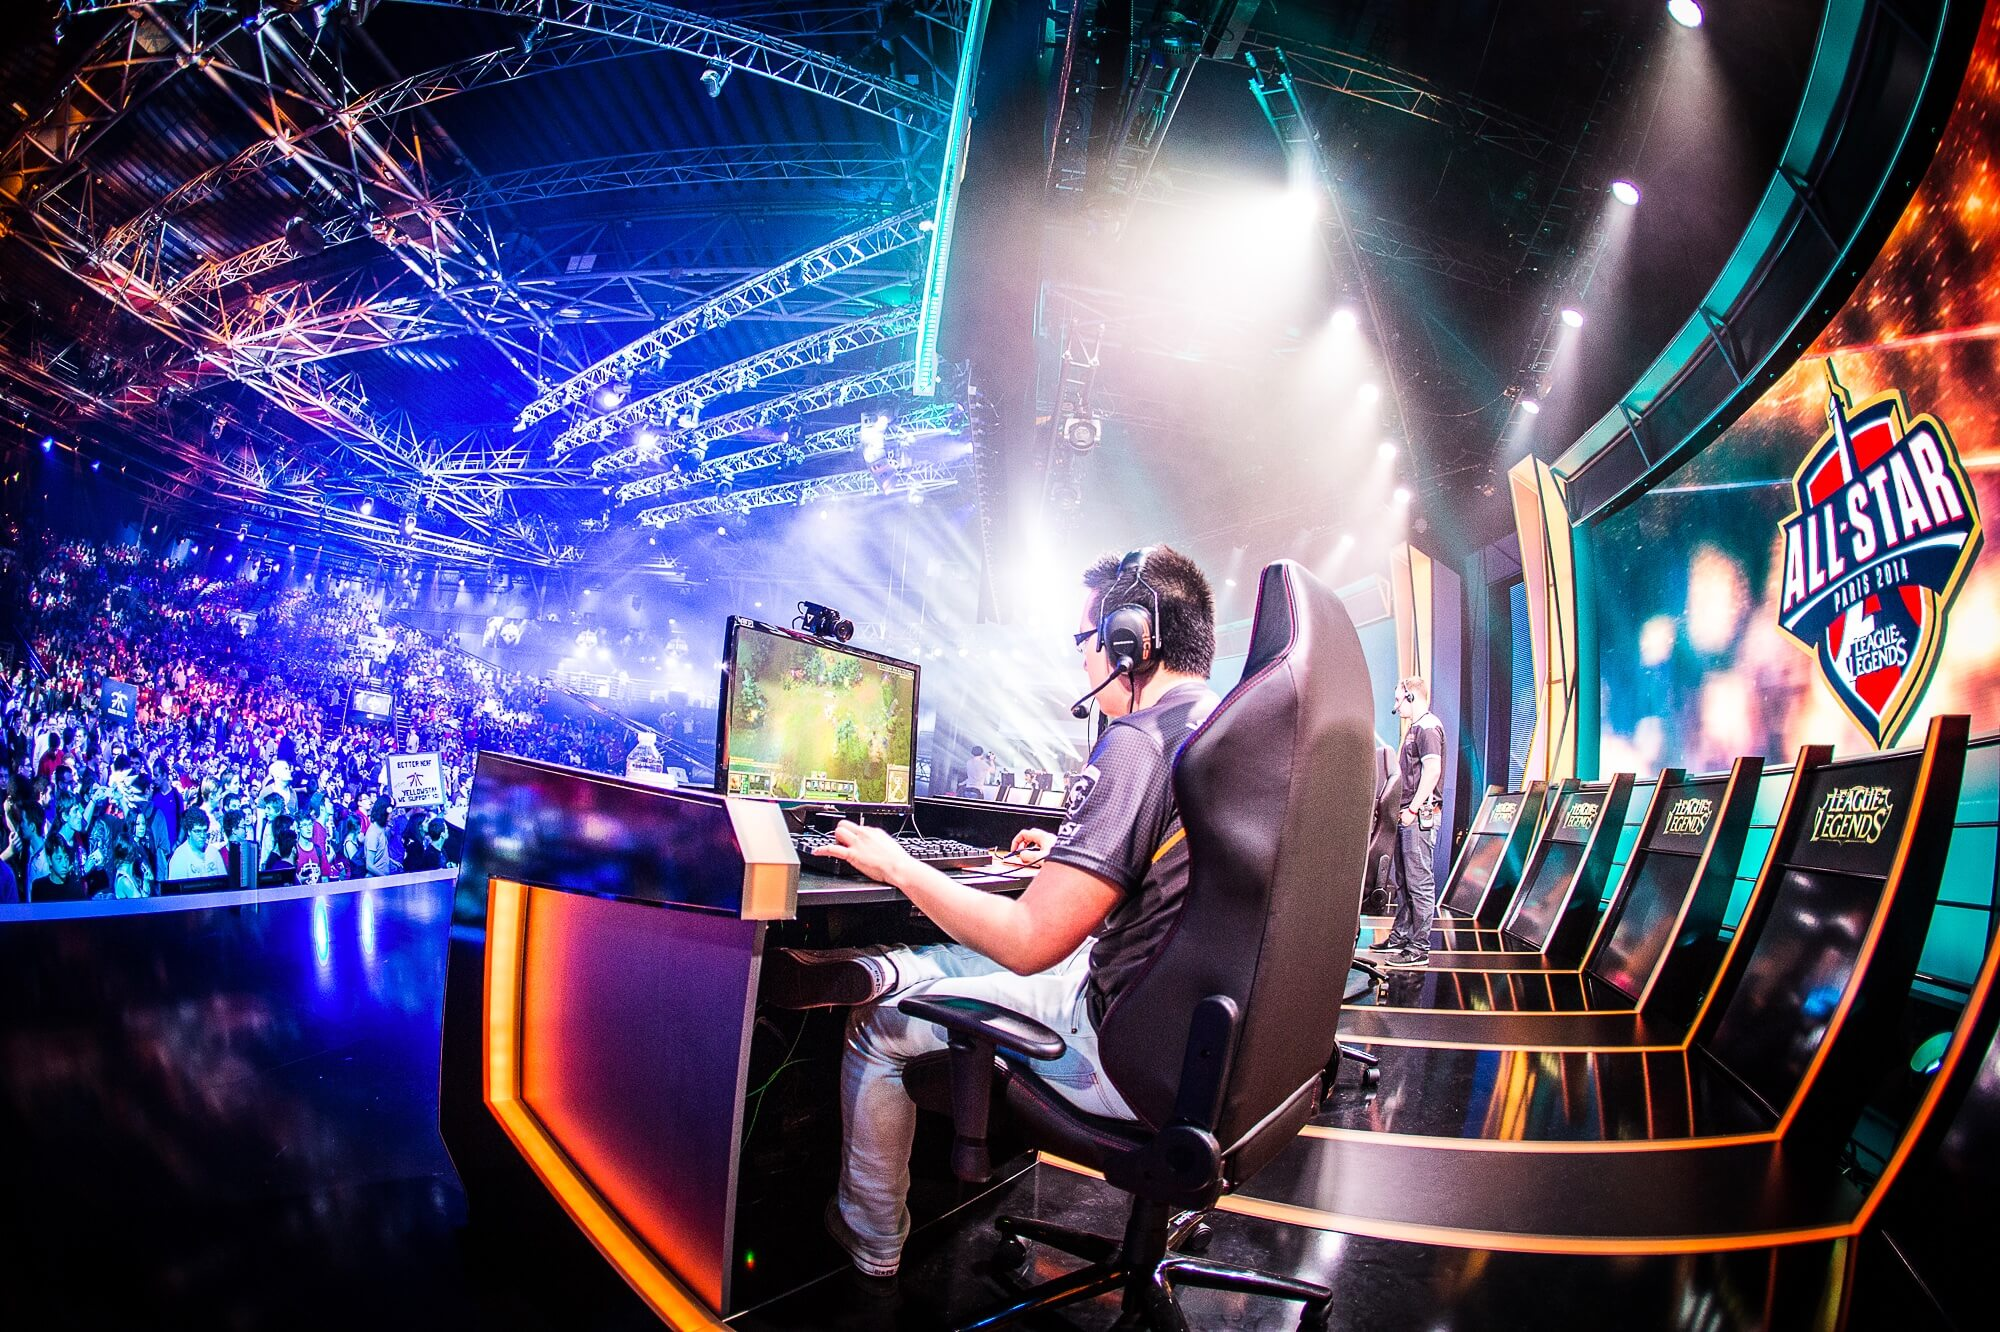 Opinion: Gaming content ecosystem drives more usage